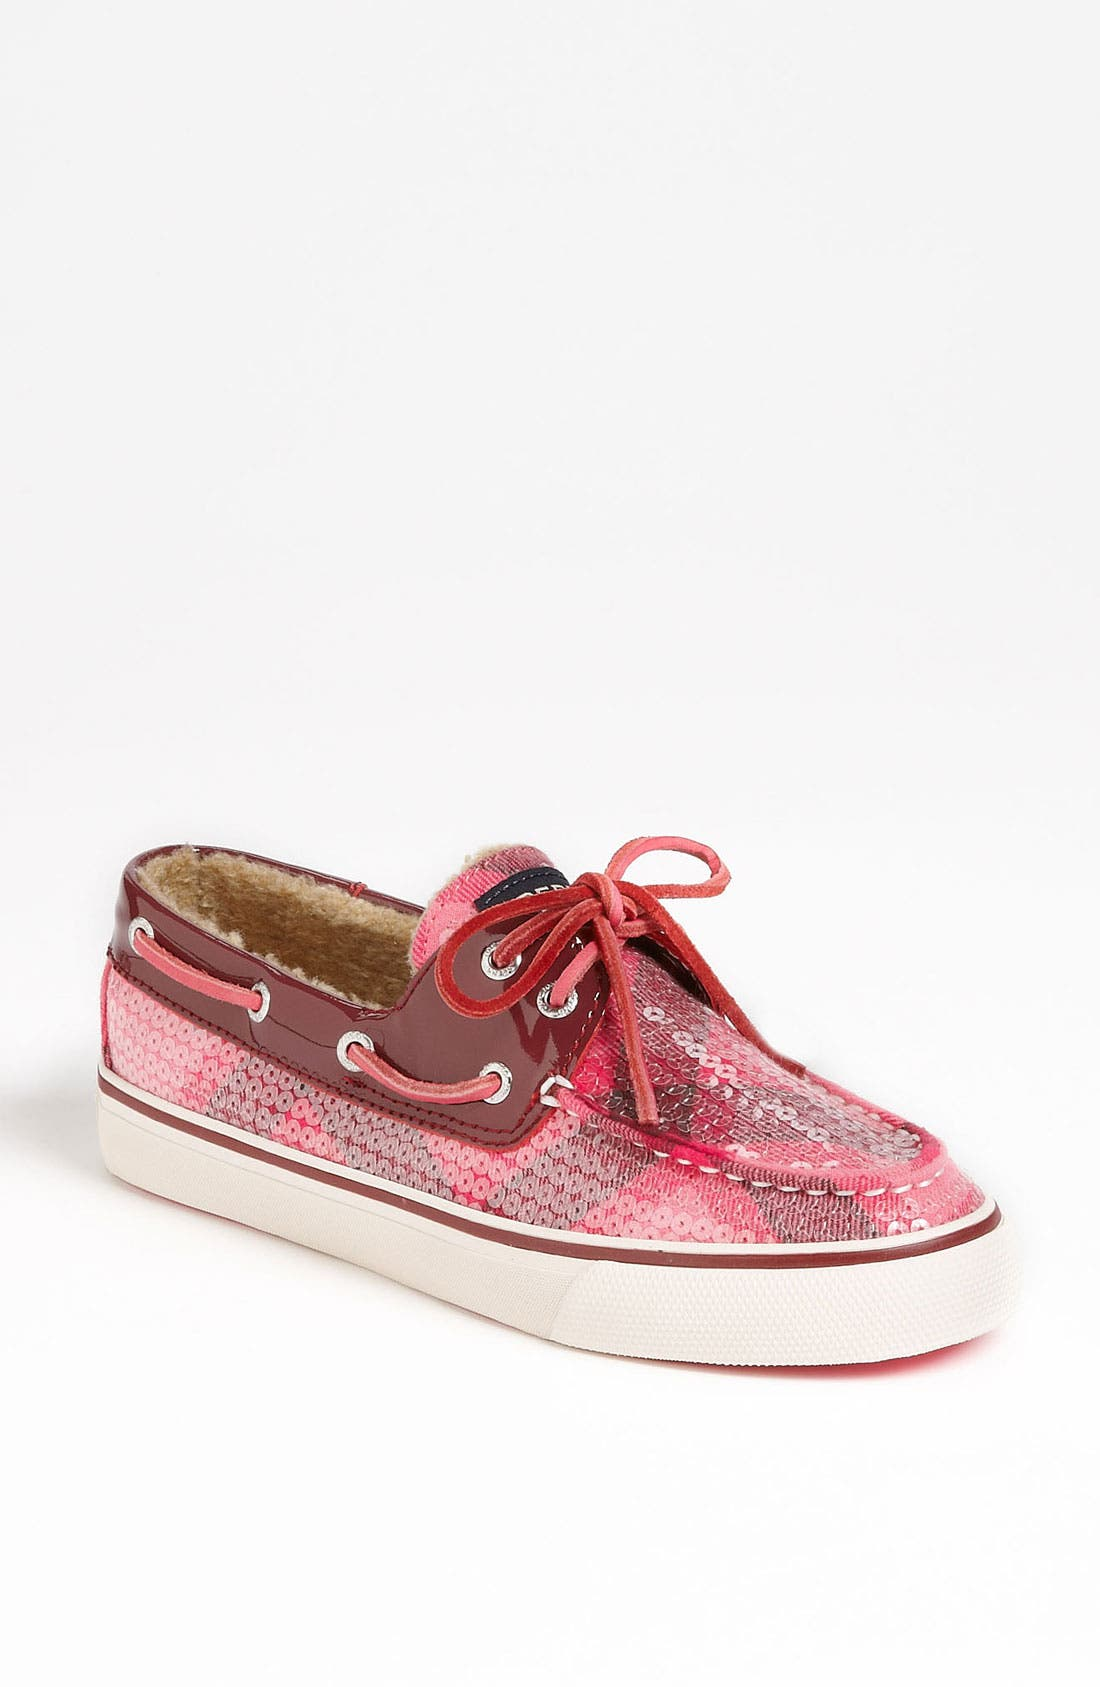 Top-Sider<sup>®</sup> 'Bahama' Sequined Boat Shoe,                             Main thumbnail 40, color,